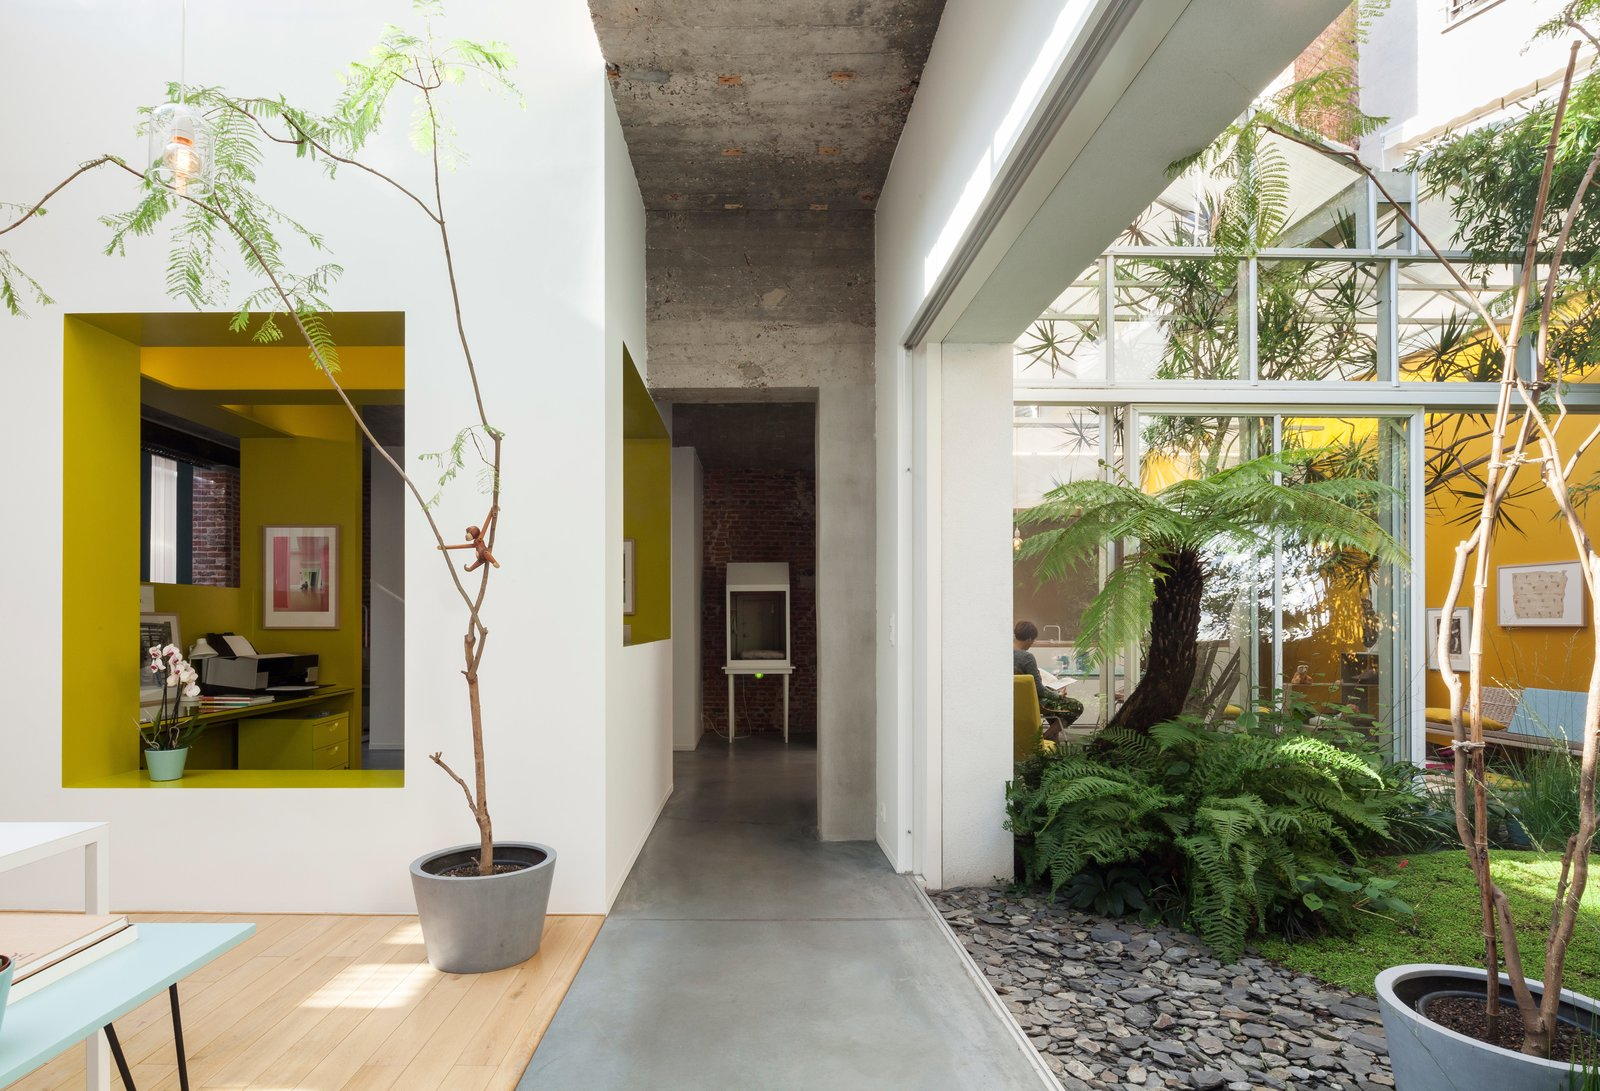 A combination of sliding doors, strategically placed voids, and large indoor plantings create fluid boundaries between indoors and out. The interior courtyard garden—landscaped with tropical plants and volcanic sand—is visually accessible from nearly every room, including the dining and kitchenarea. Tagged: Hallway and Concrete Floor.  Modern Homes With Lush, Indoor Plants by Aileen Kwun from A Creative Dreamworld Complete With Neon Rooms and a Tropical Garden